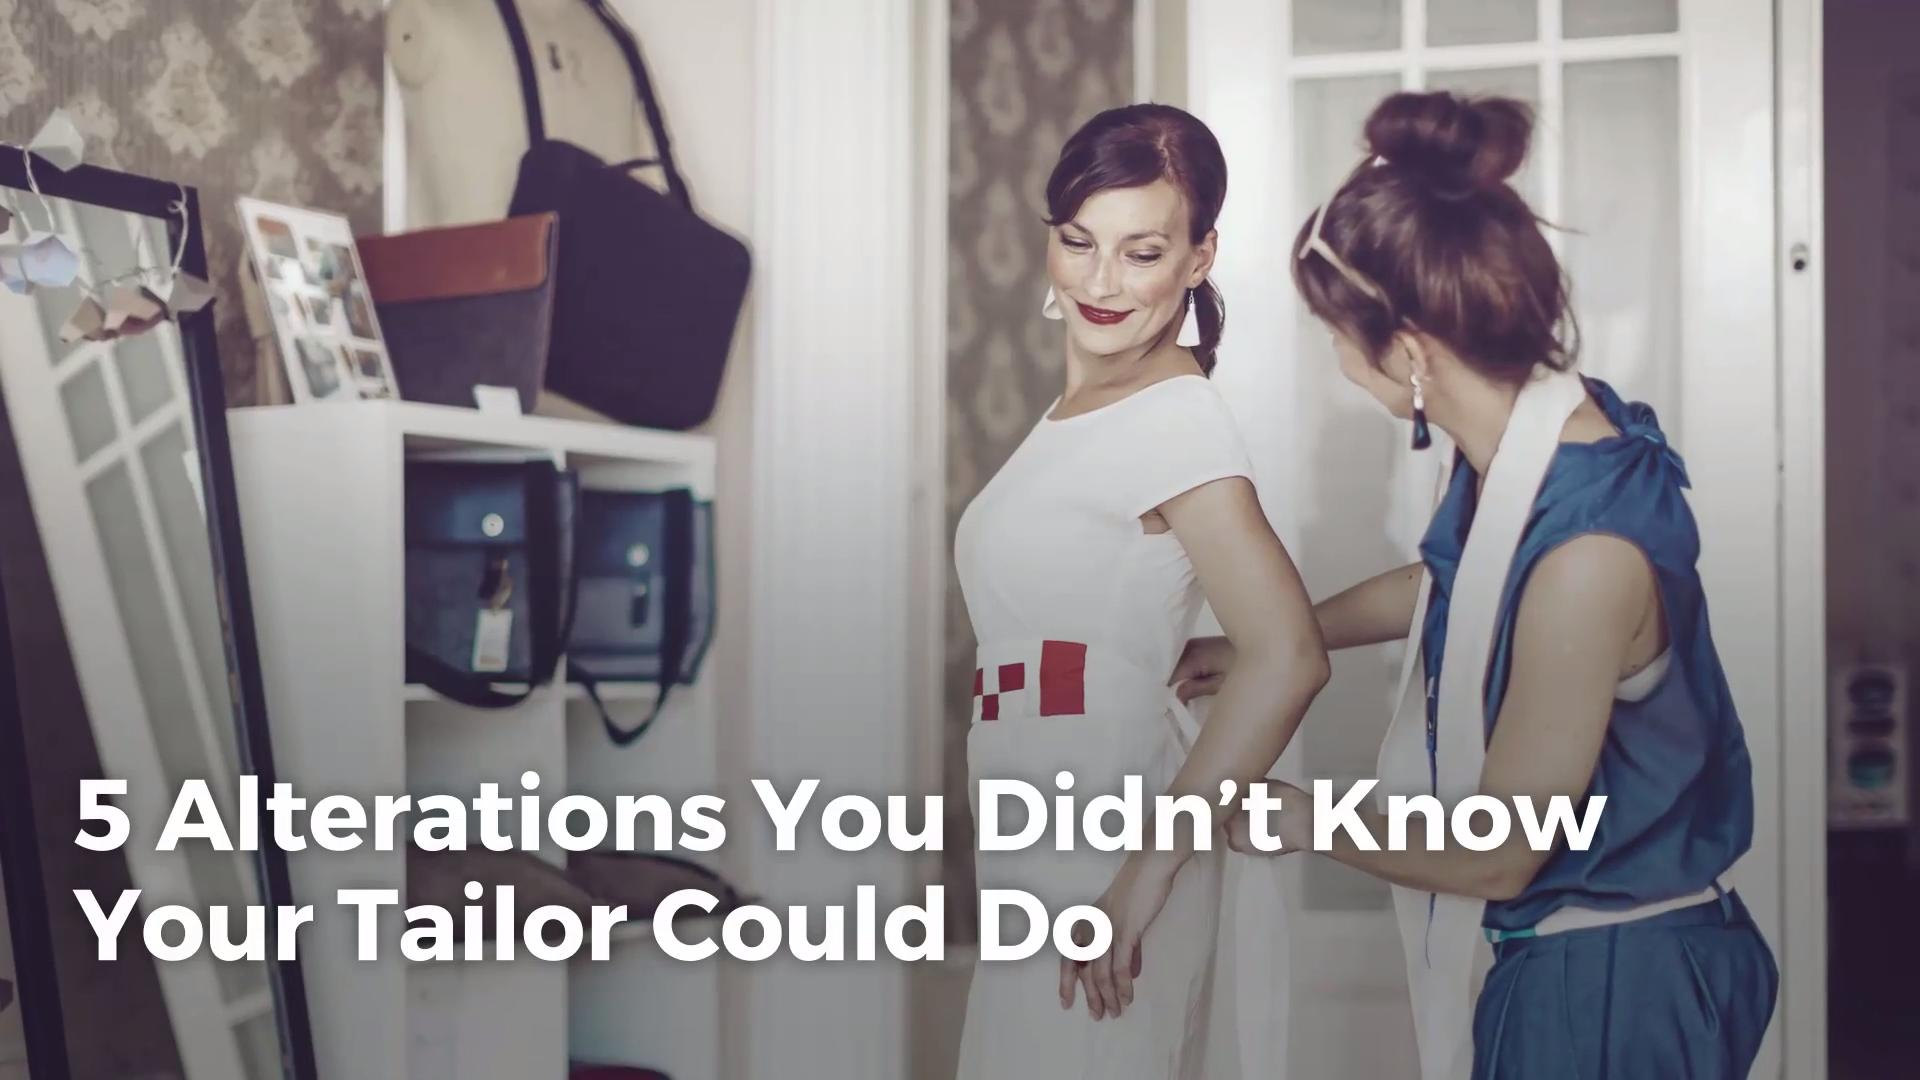 ab70da76af 5 Alterations You Didn t Know Your Tailor Could Do